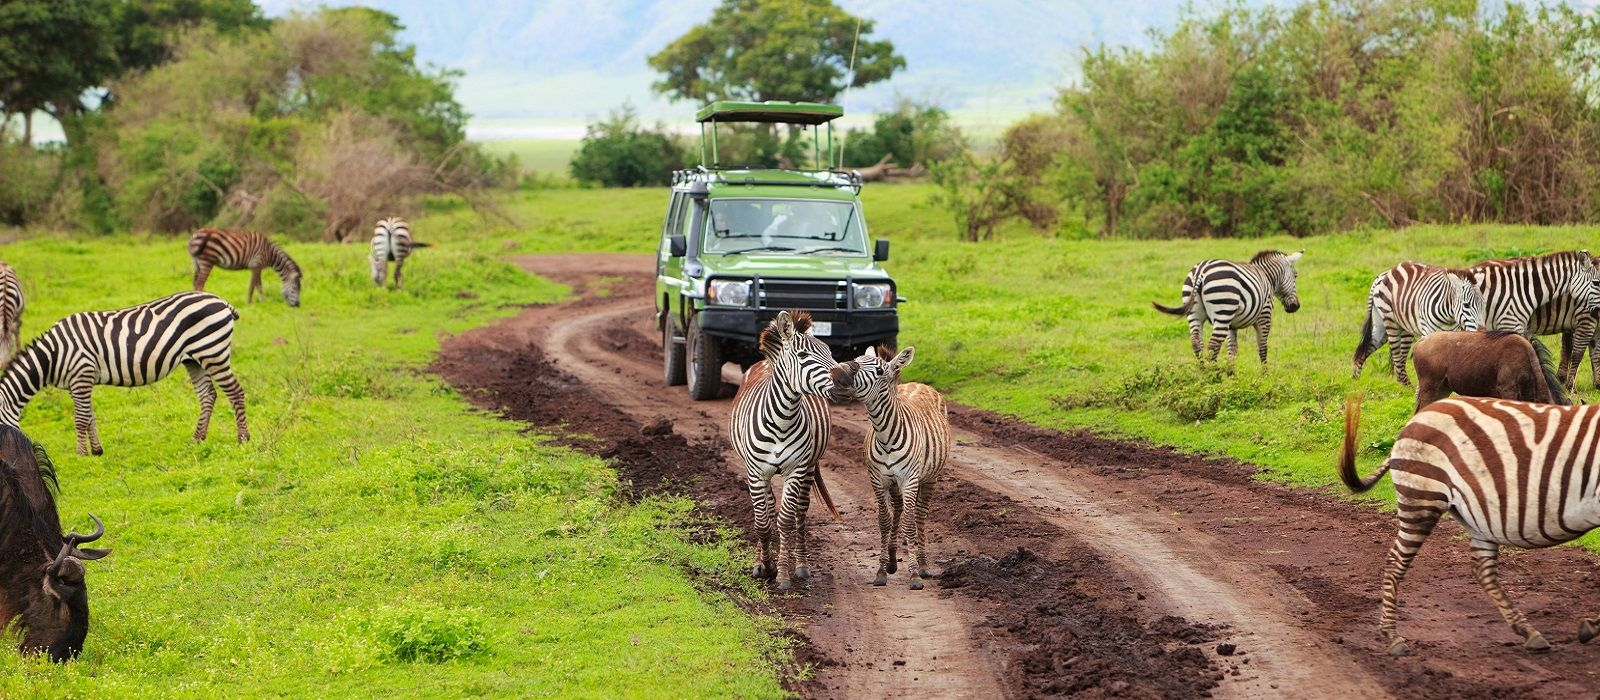 Highlights of Africa Tour Trip 2